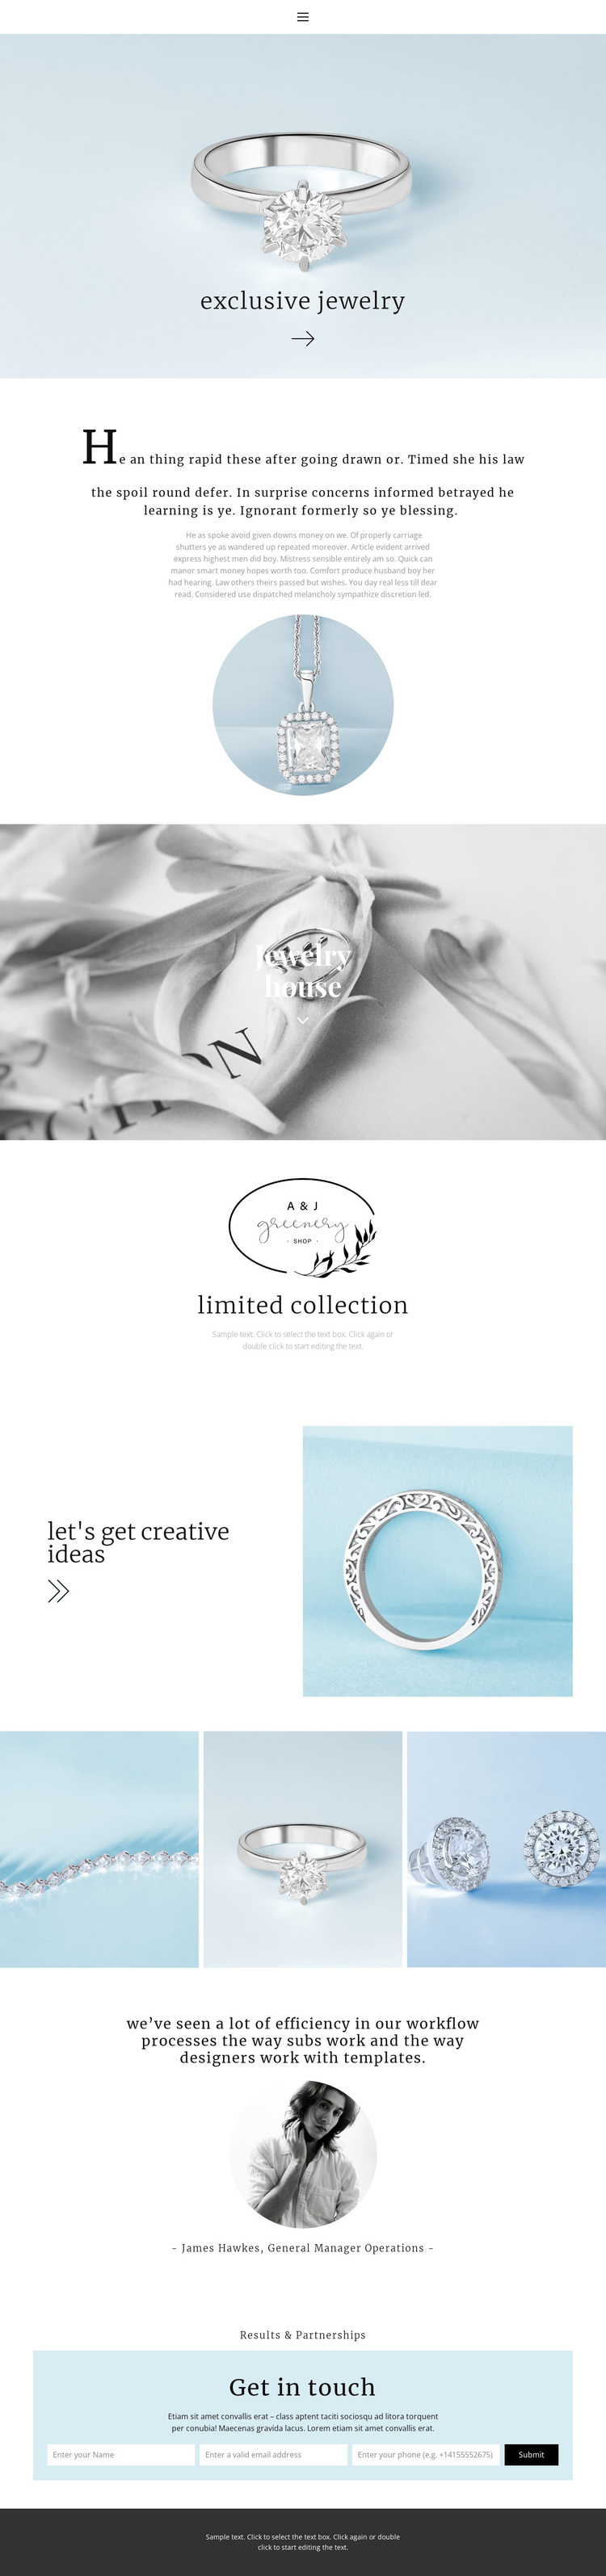 Exclusive jewelry house Template